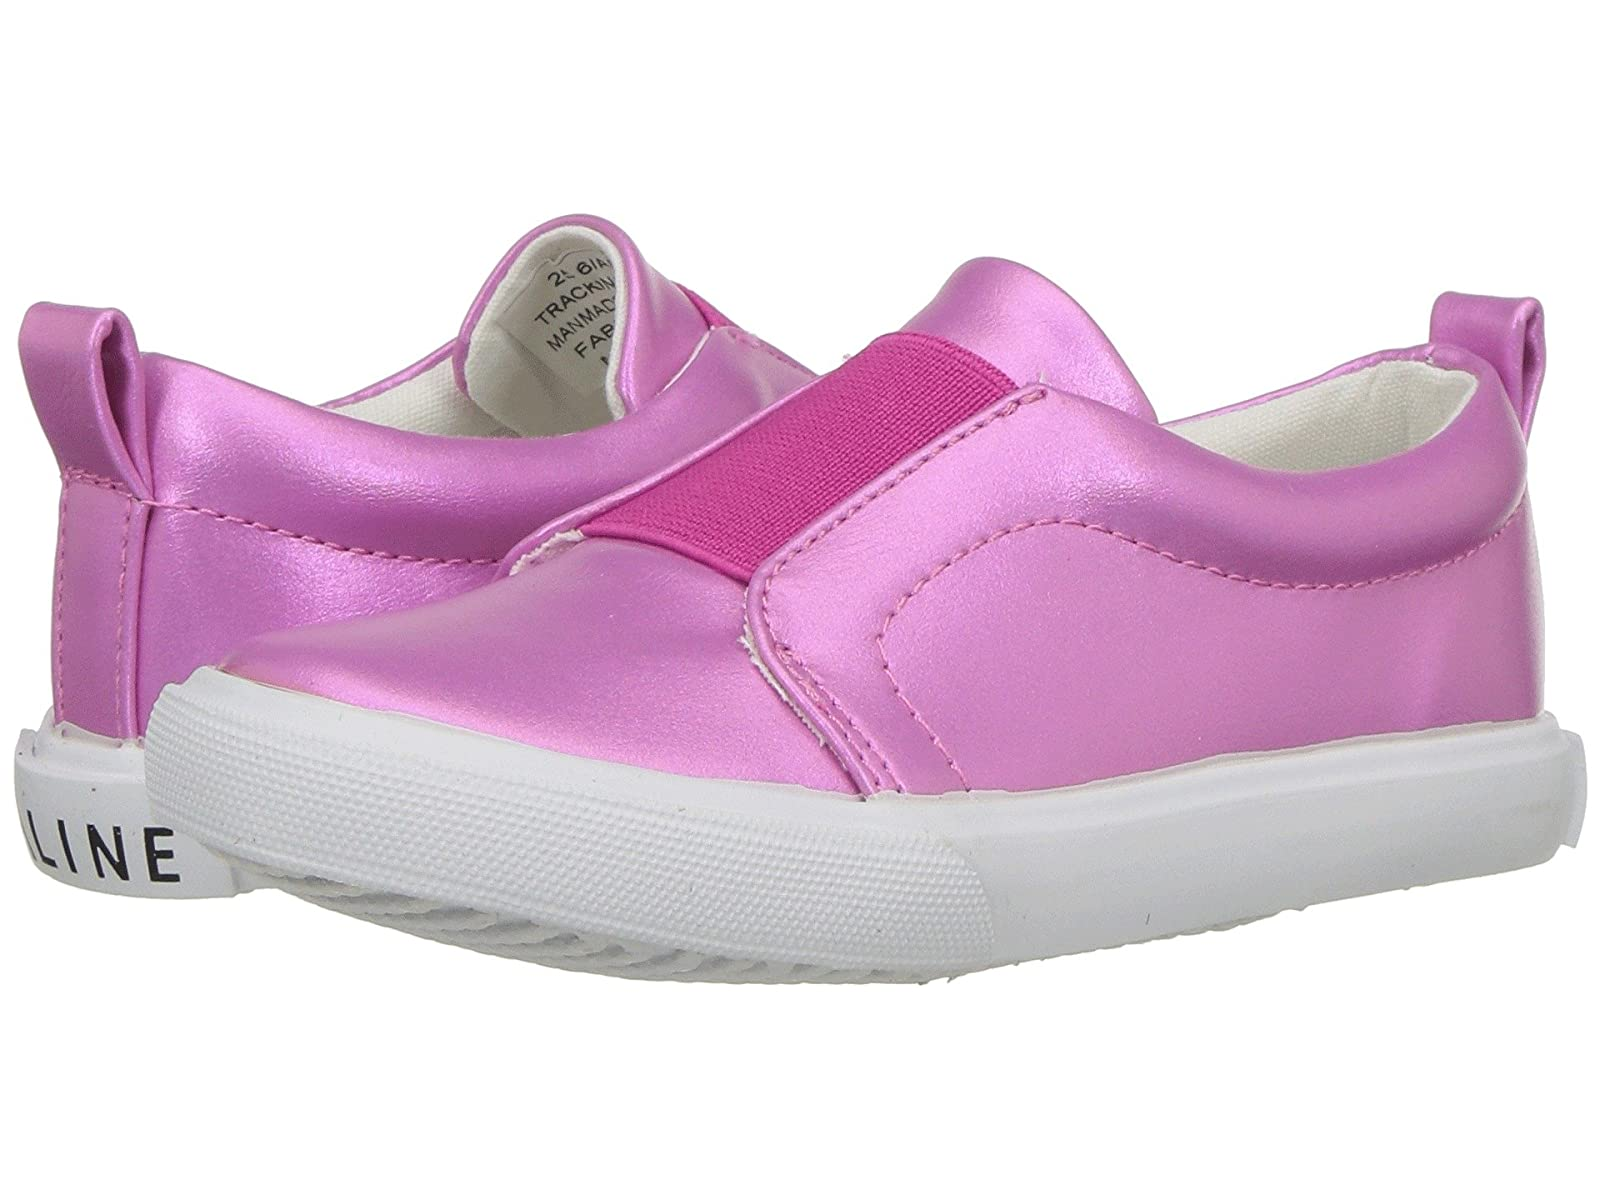 Amiana 6-A0954 (Toddler/Little Kid/Big Kid/Adult)Atmospheric grades have affordable shoes